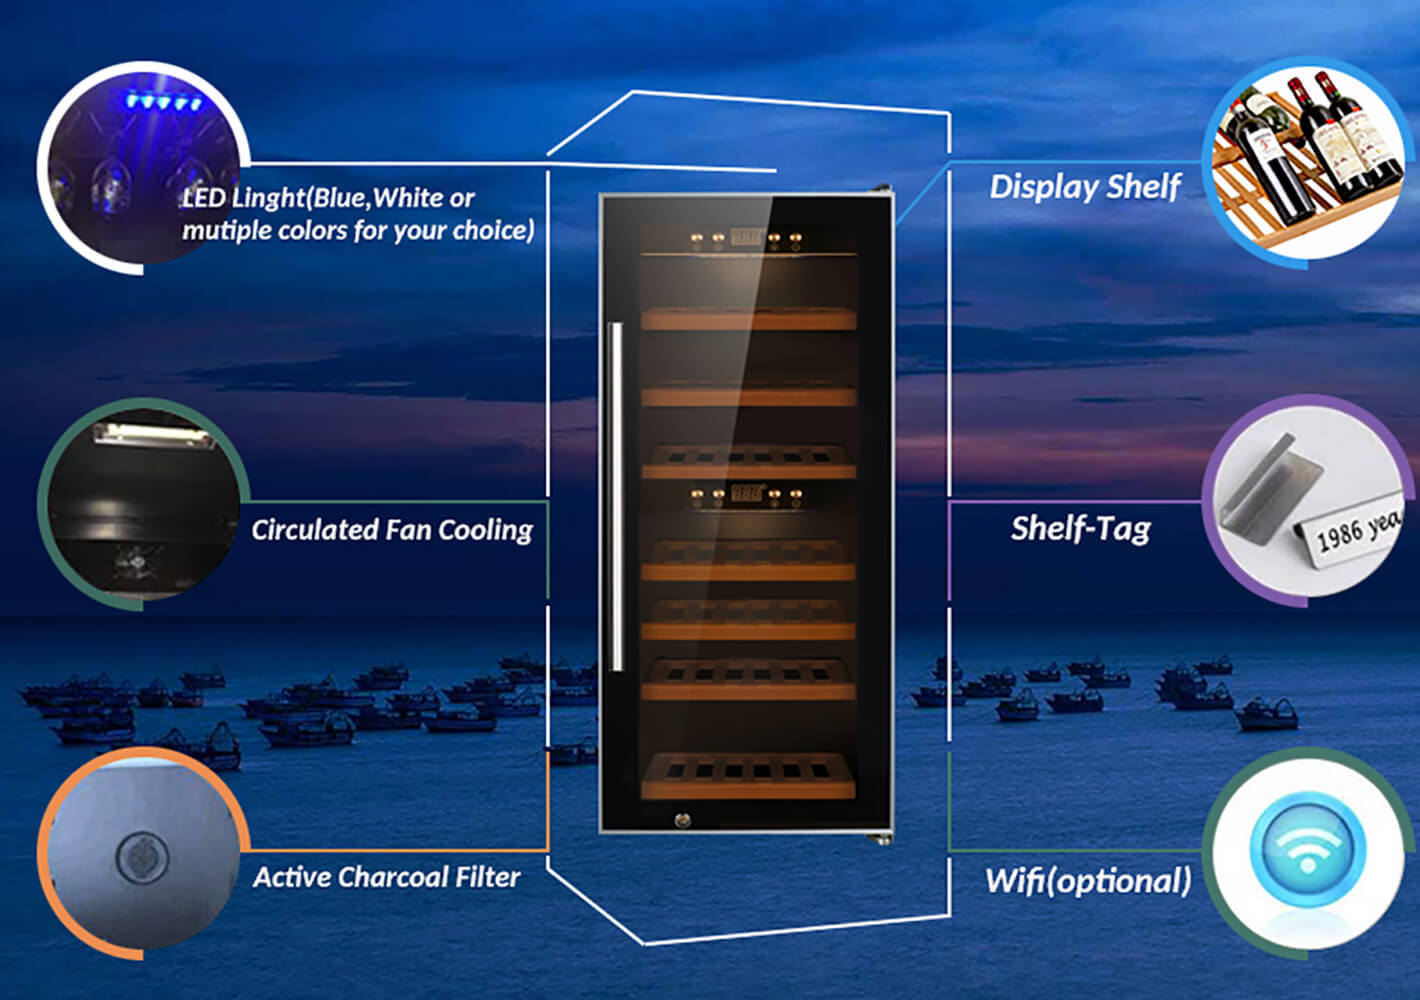 Sunnai wood dual zone freestanding wine cooler refrigerator for shop-2